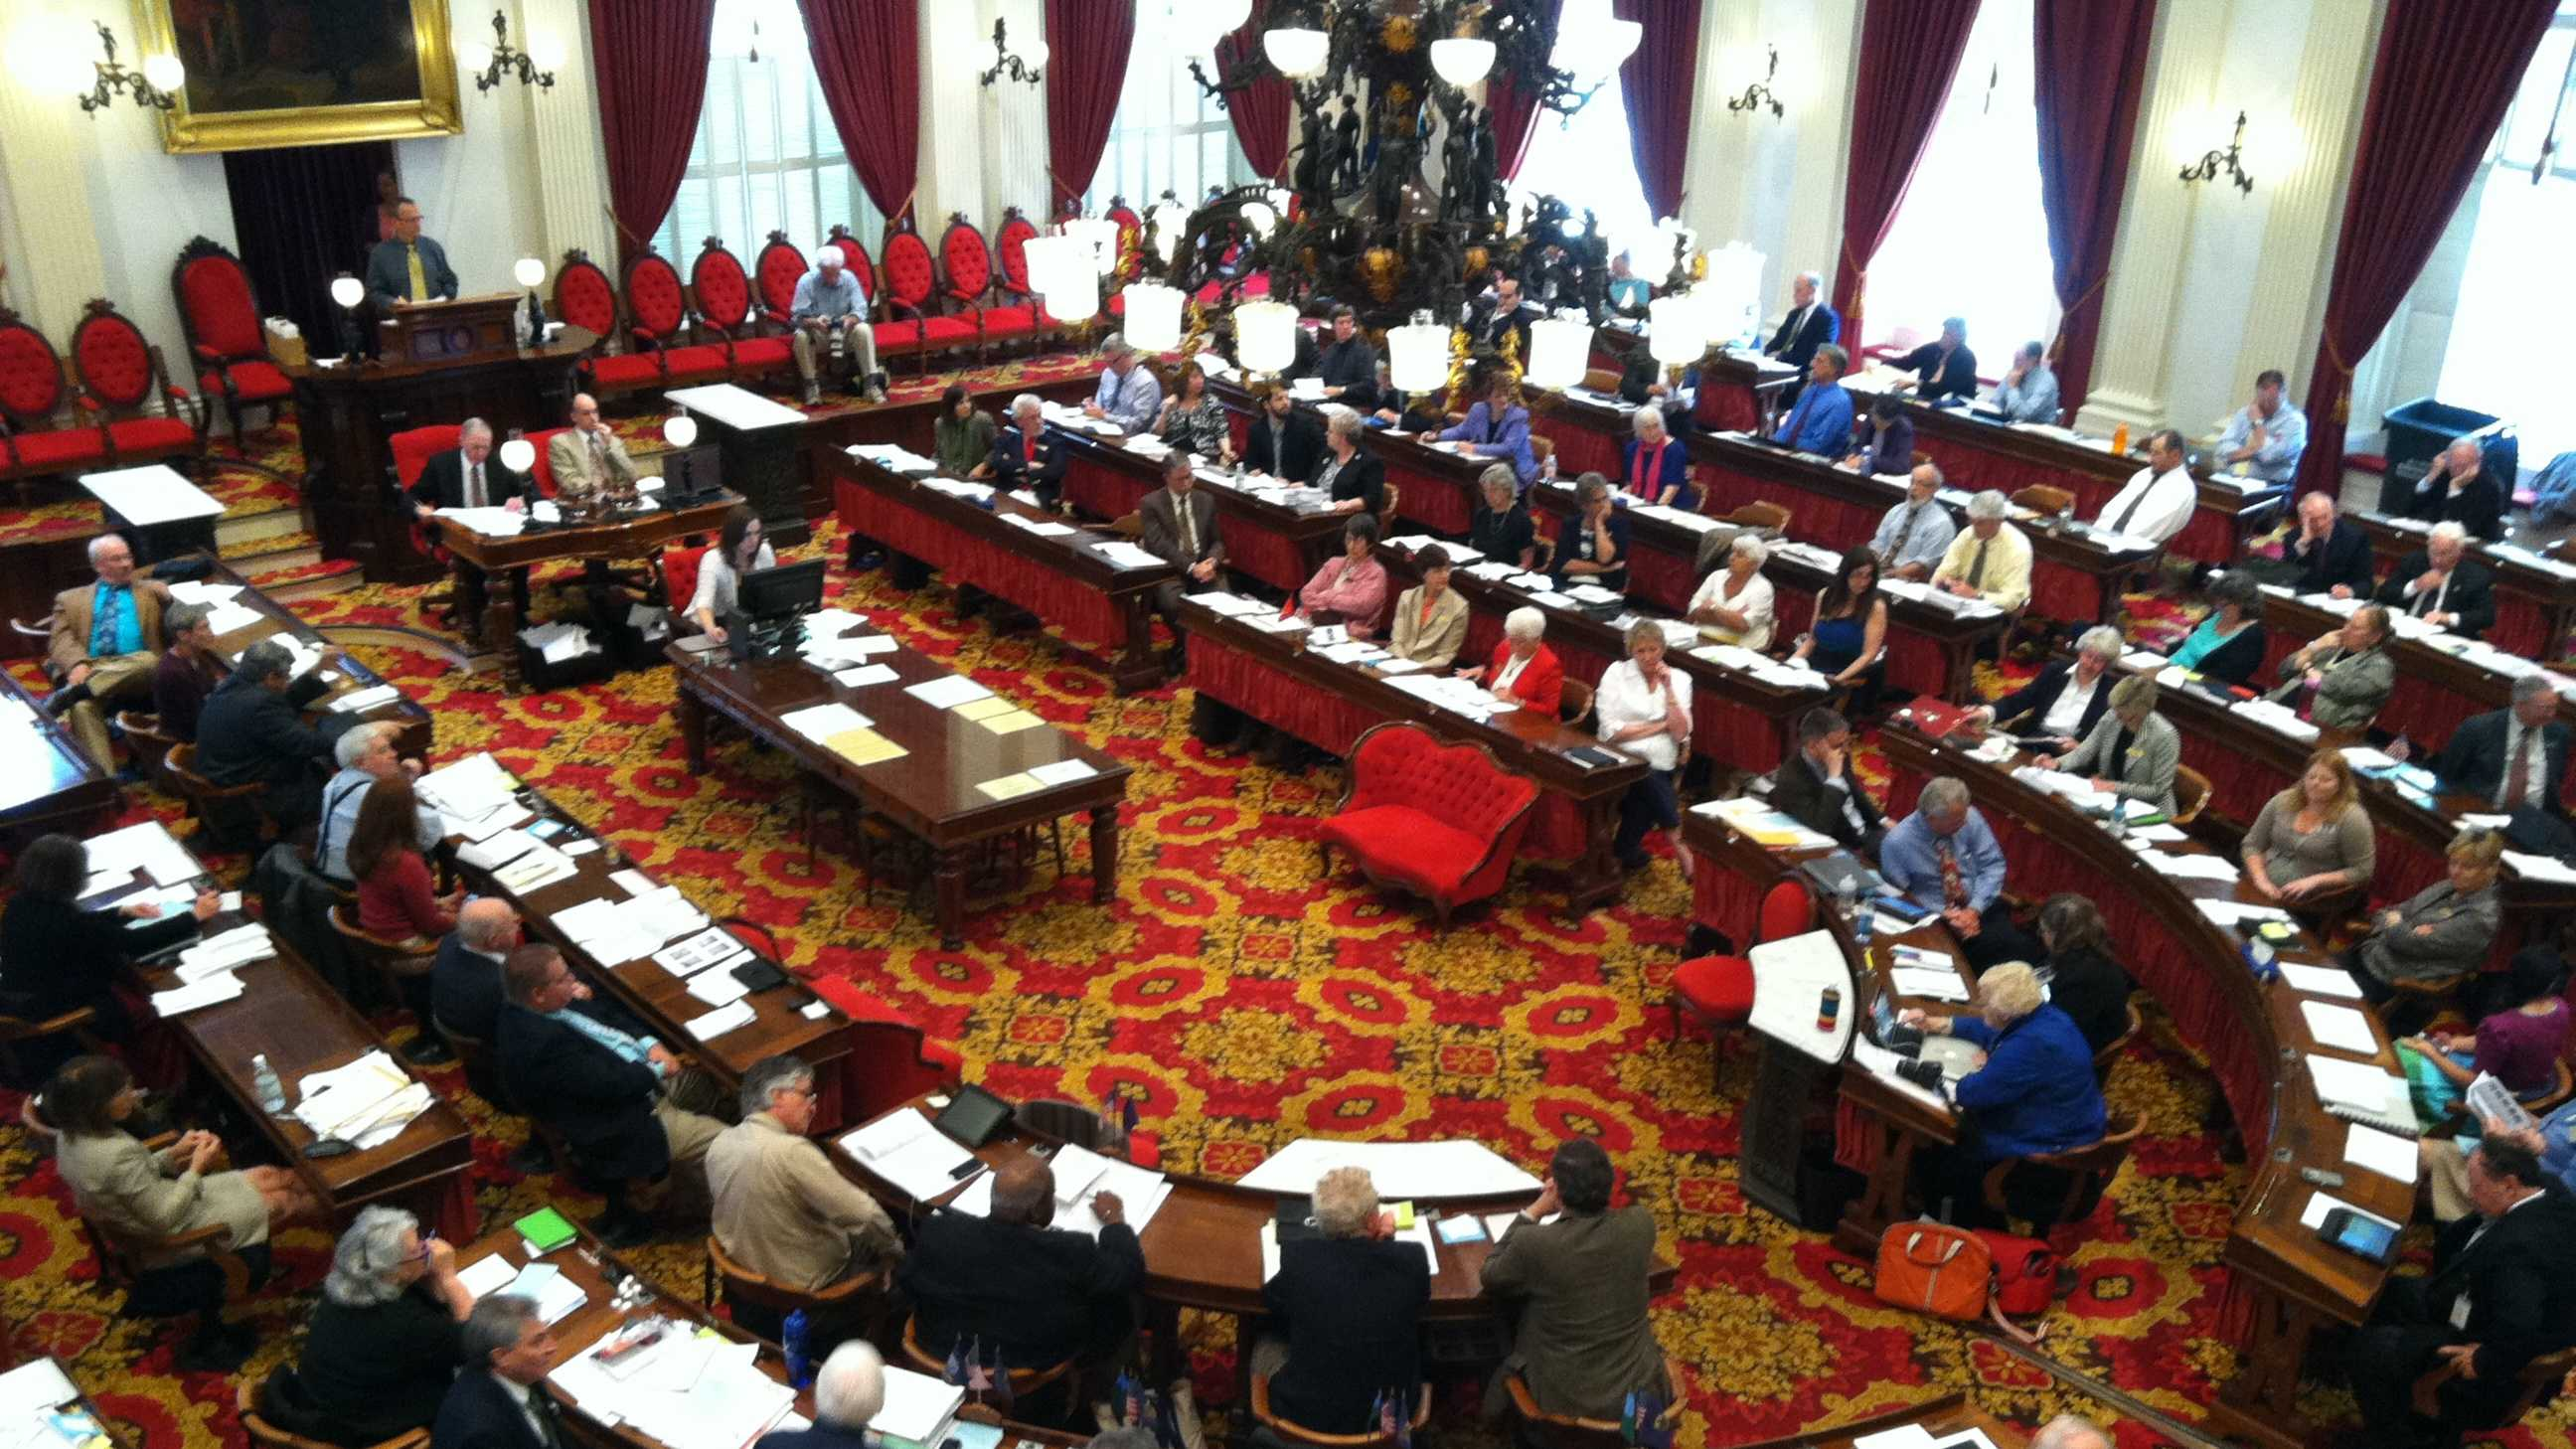 05-10-13 Vt. House approves GMO labeling bill - img